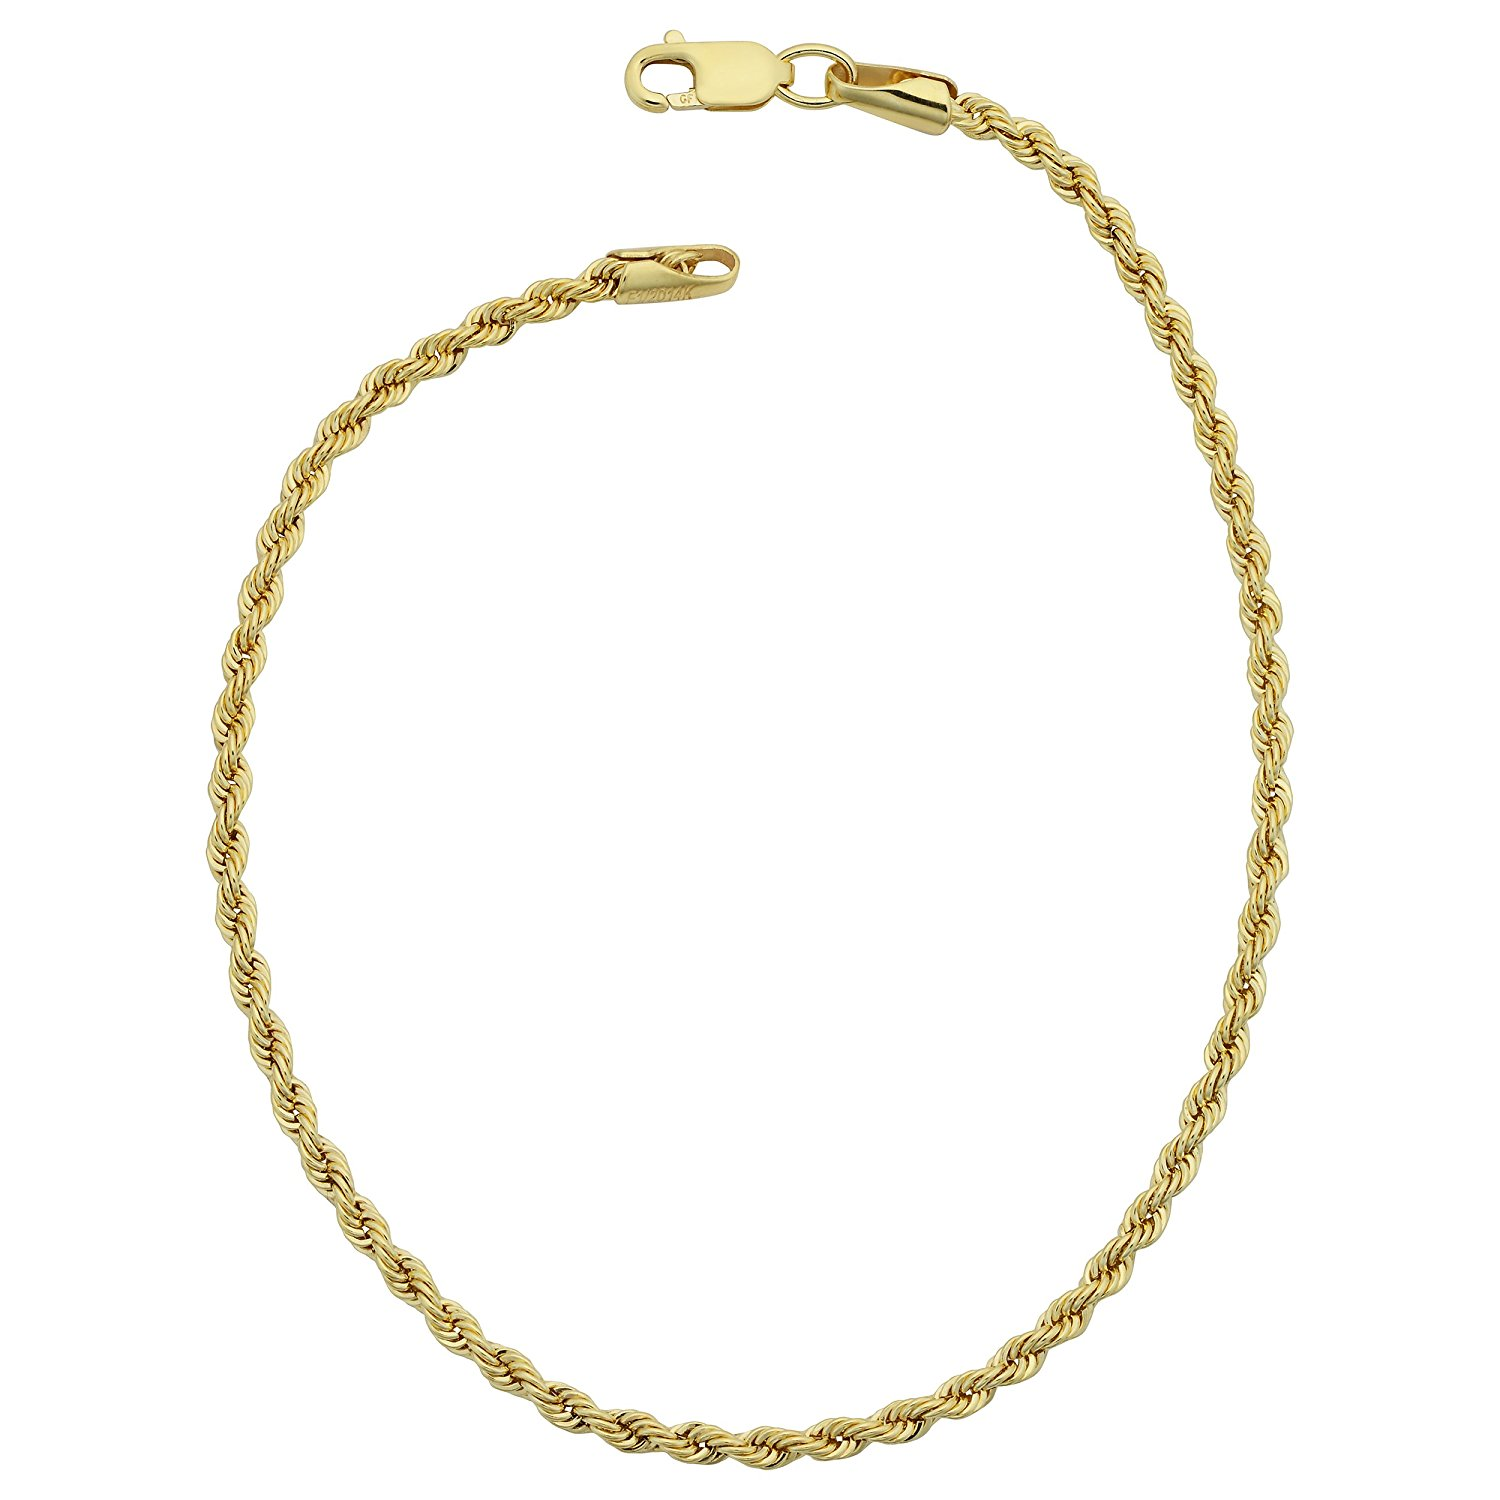 14K Yellow Gold Filled Solid Rope Chain Bracelet, 2.1mm, 8.5″